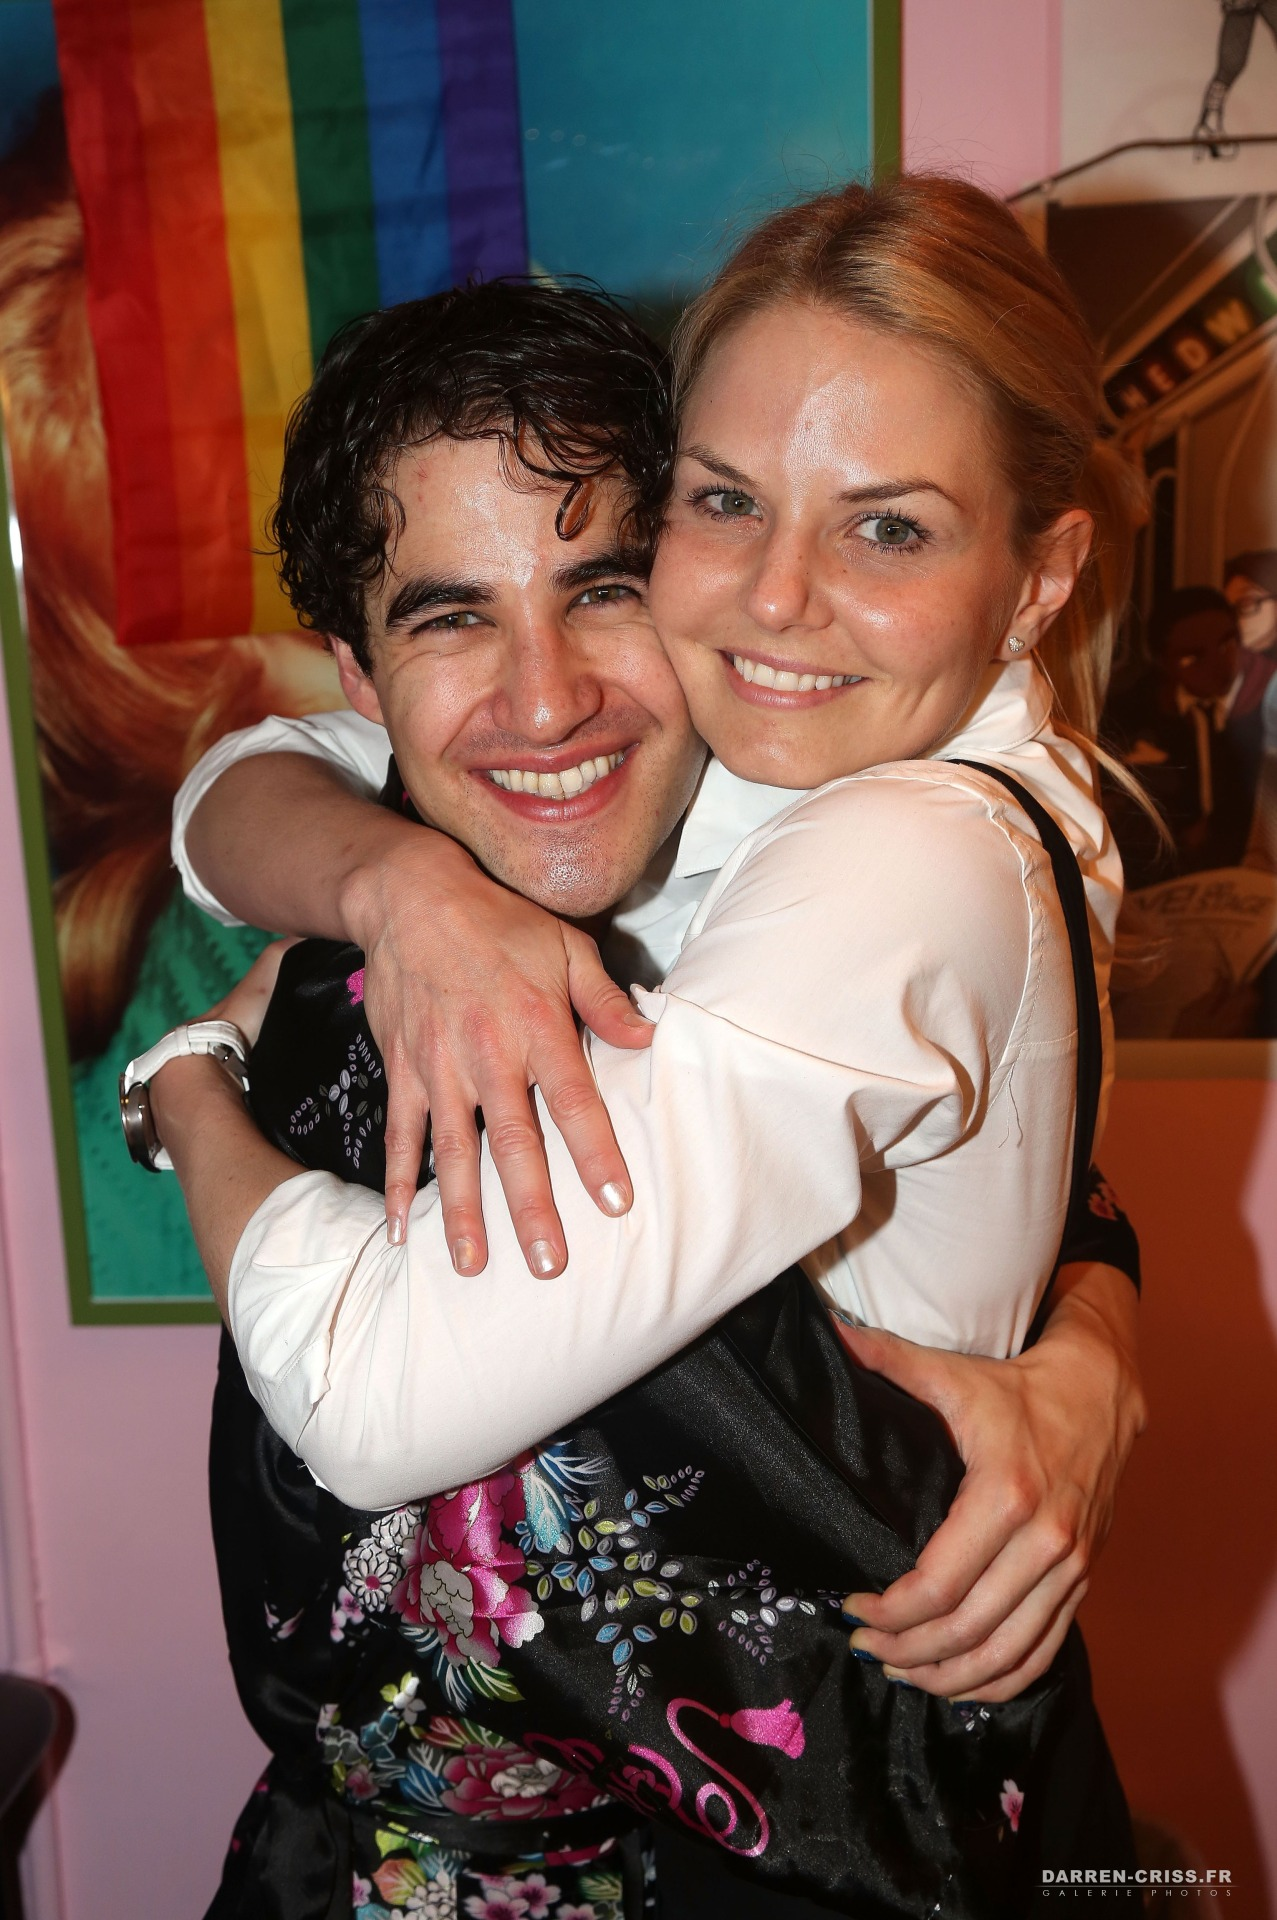 soproud - Who saw Darren in Hedwig and the Angry Inch on Broadway? Tumblr_nqpgot07Yr1qayexuo4_1280